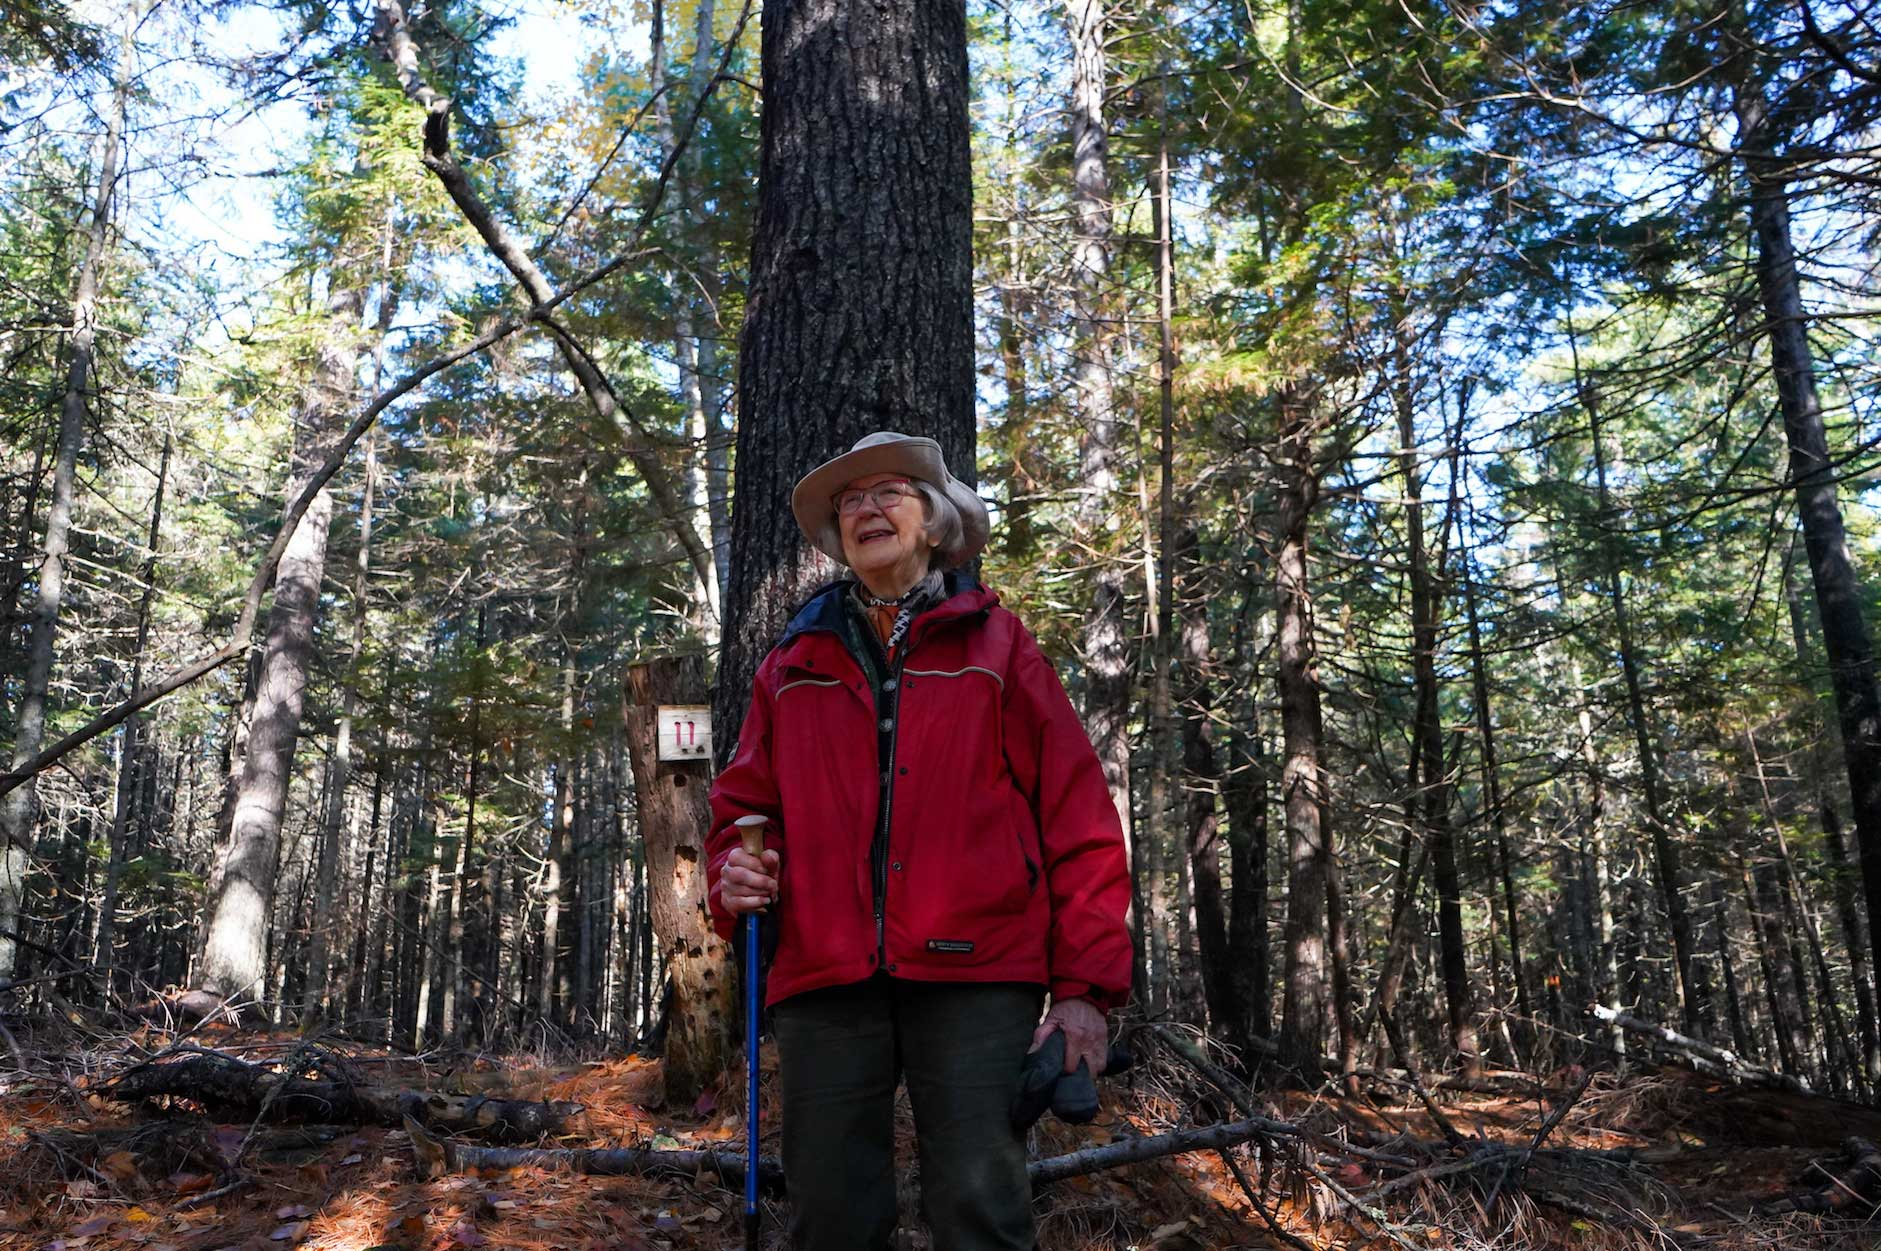 Robena Weatherly stands in front of a pine tree in her forest.